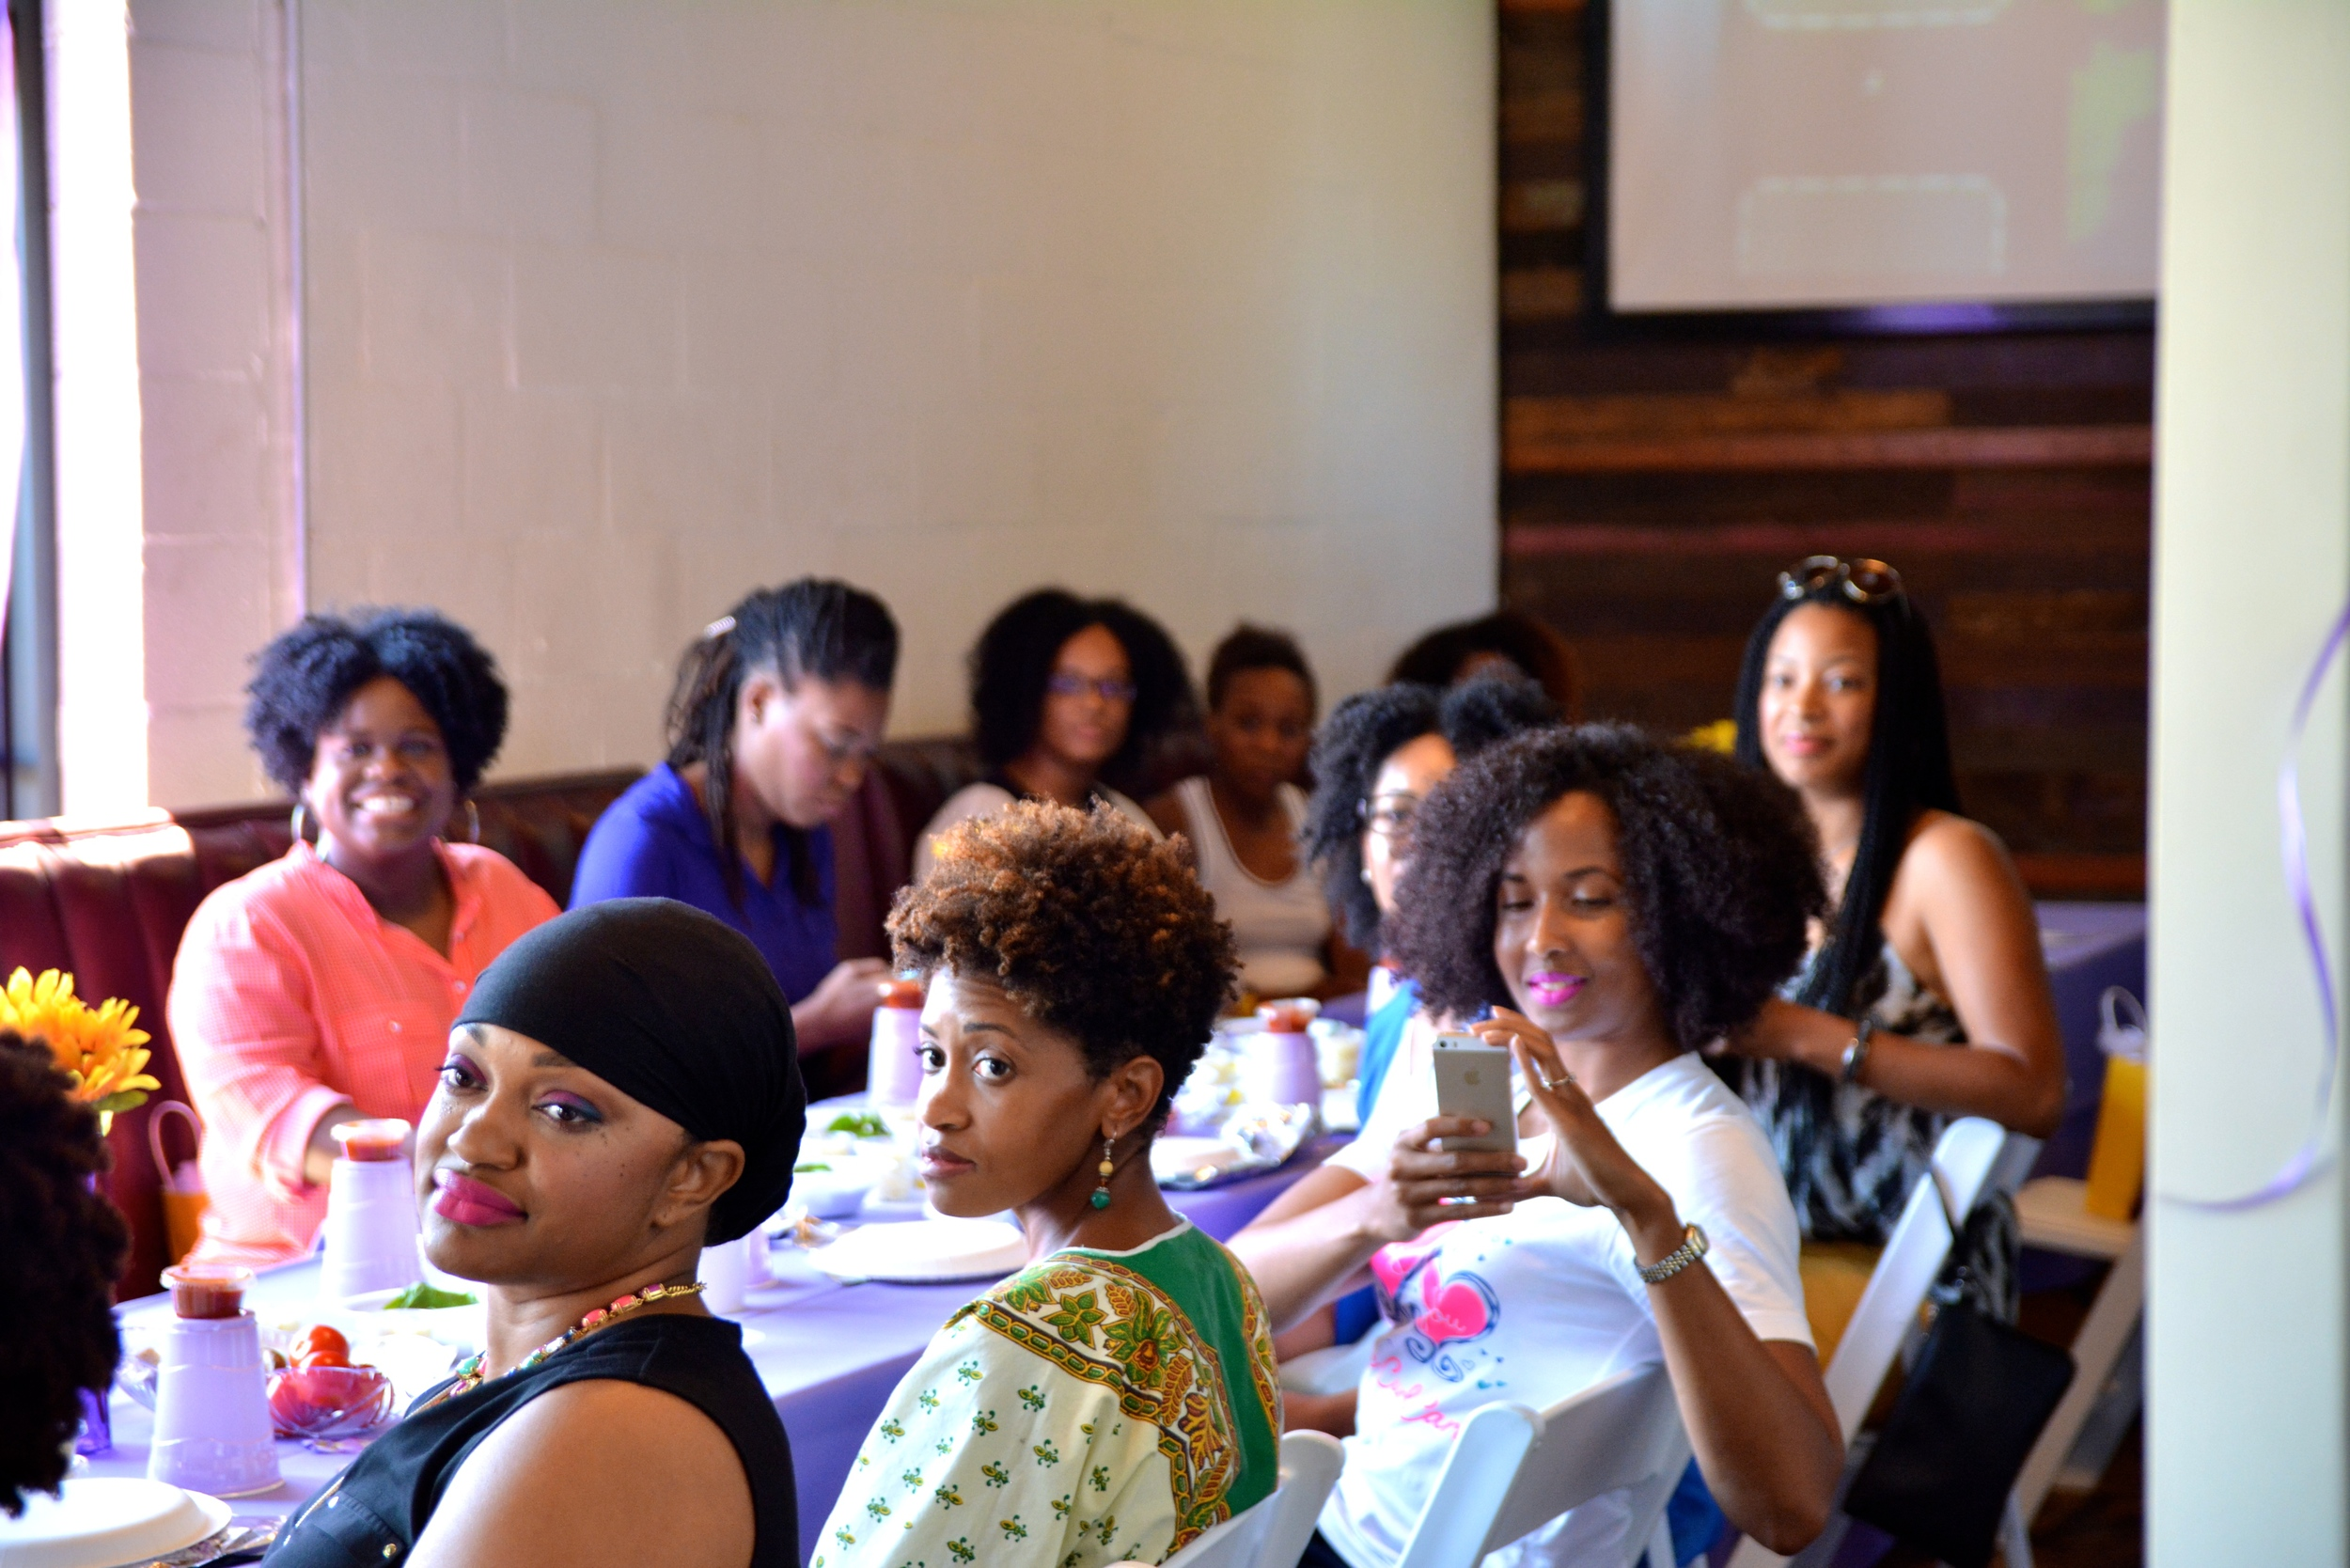 Guests listened to speakers share hair benefits of food ingredients before cooking.